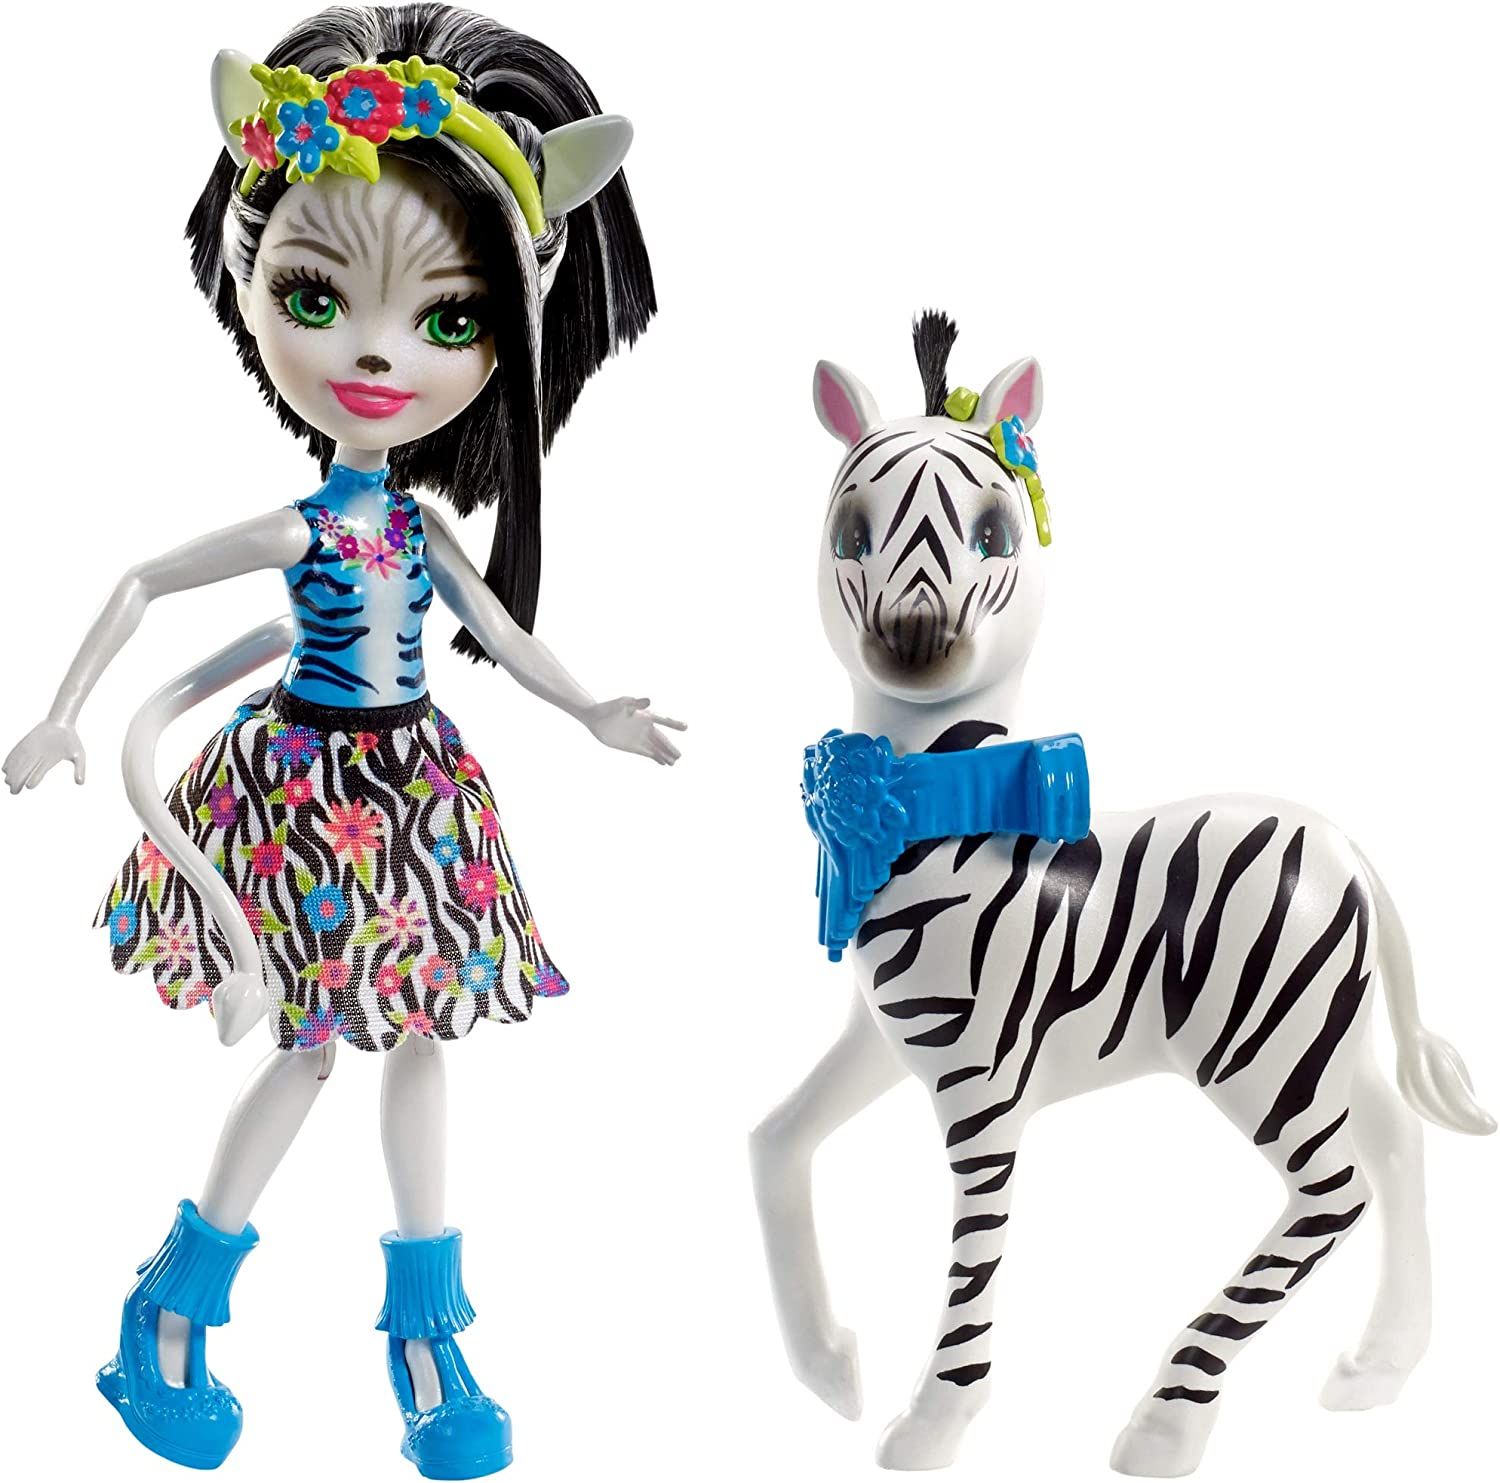 Enchantimals Zelena Zebra Dolls